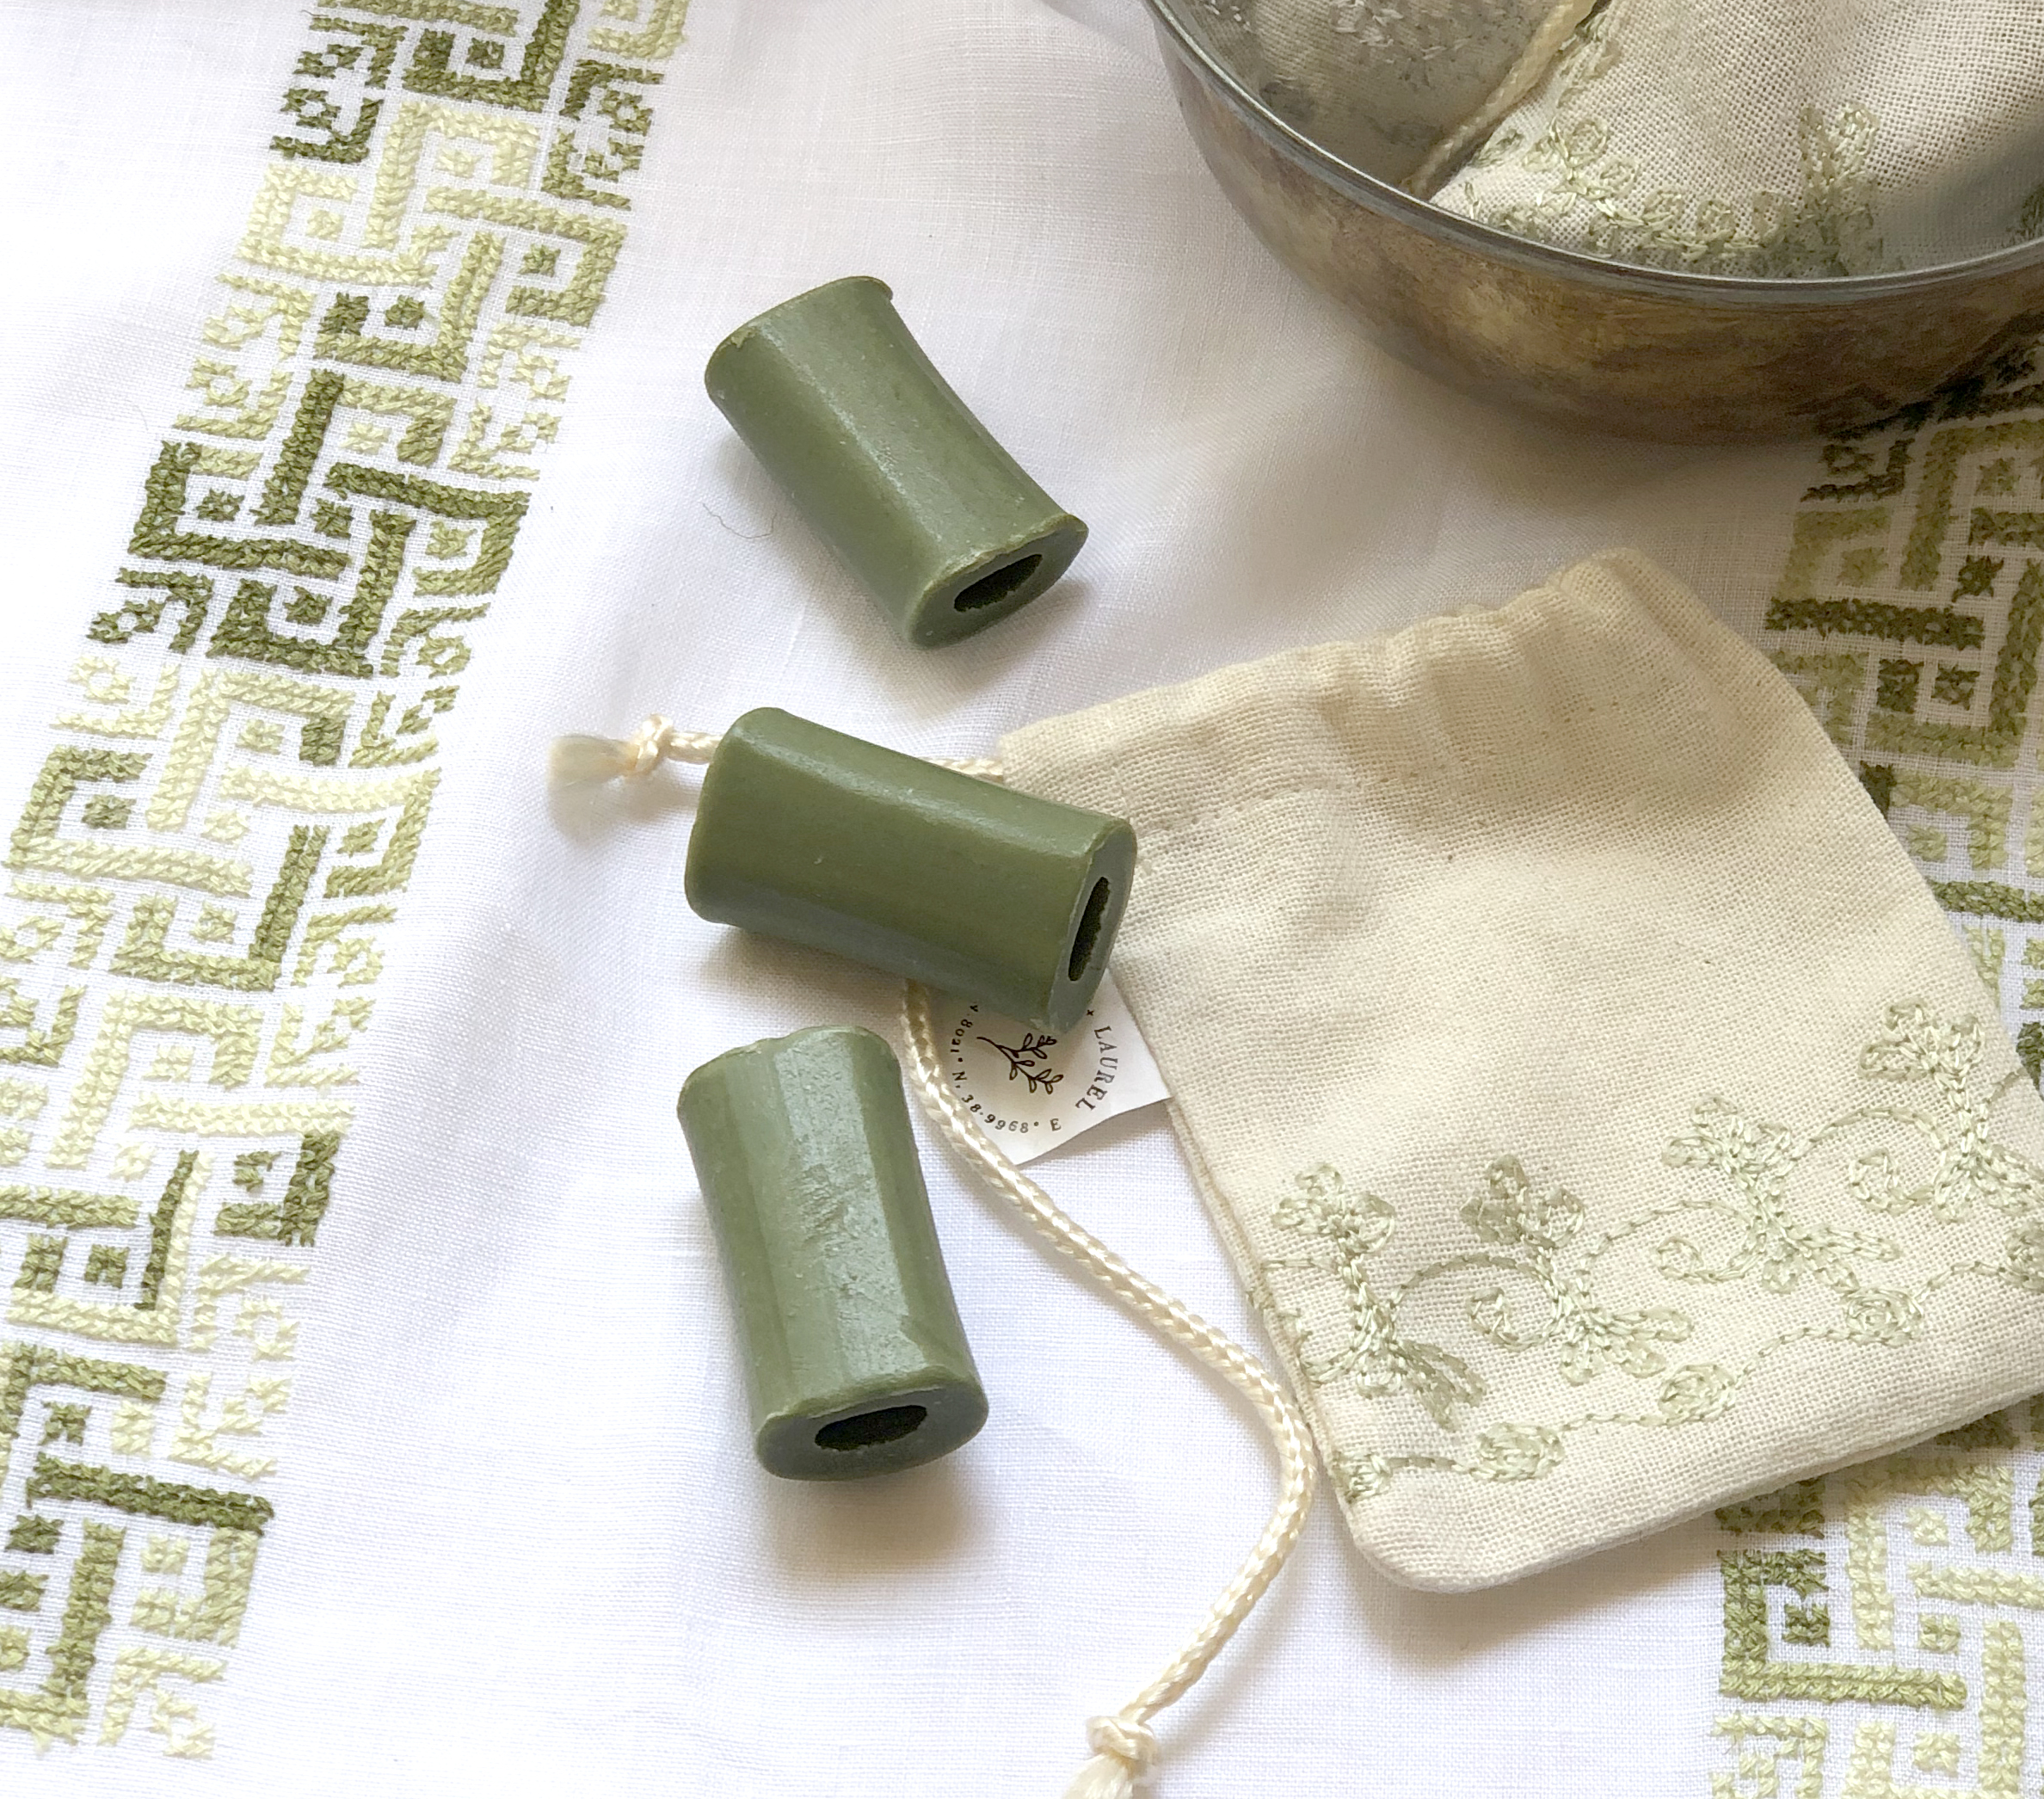 """Mini Fragrance Pouches - I got these beautiful handmade pouches, with the mini laurel soap tubes, as favors for my baby shower. They smelled refreshing, crisp and clean, like you've just taken a bath. The smell lasts a very long time which is great. I kept a few for myself, and use them at home in my satin drawer and in my car!""""-MAECE S., SEAL BEACH, CA."""